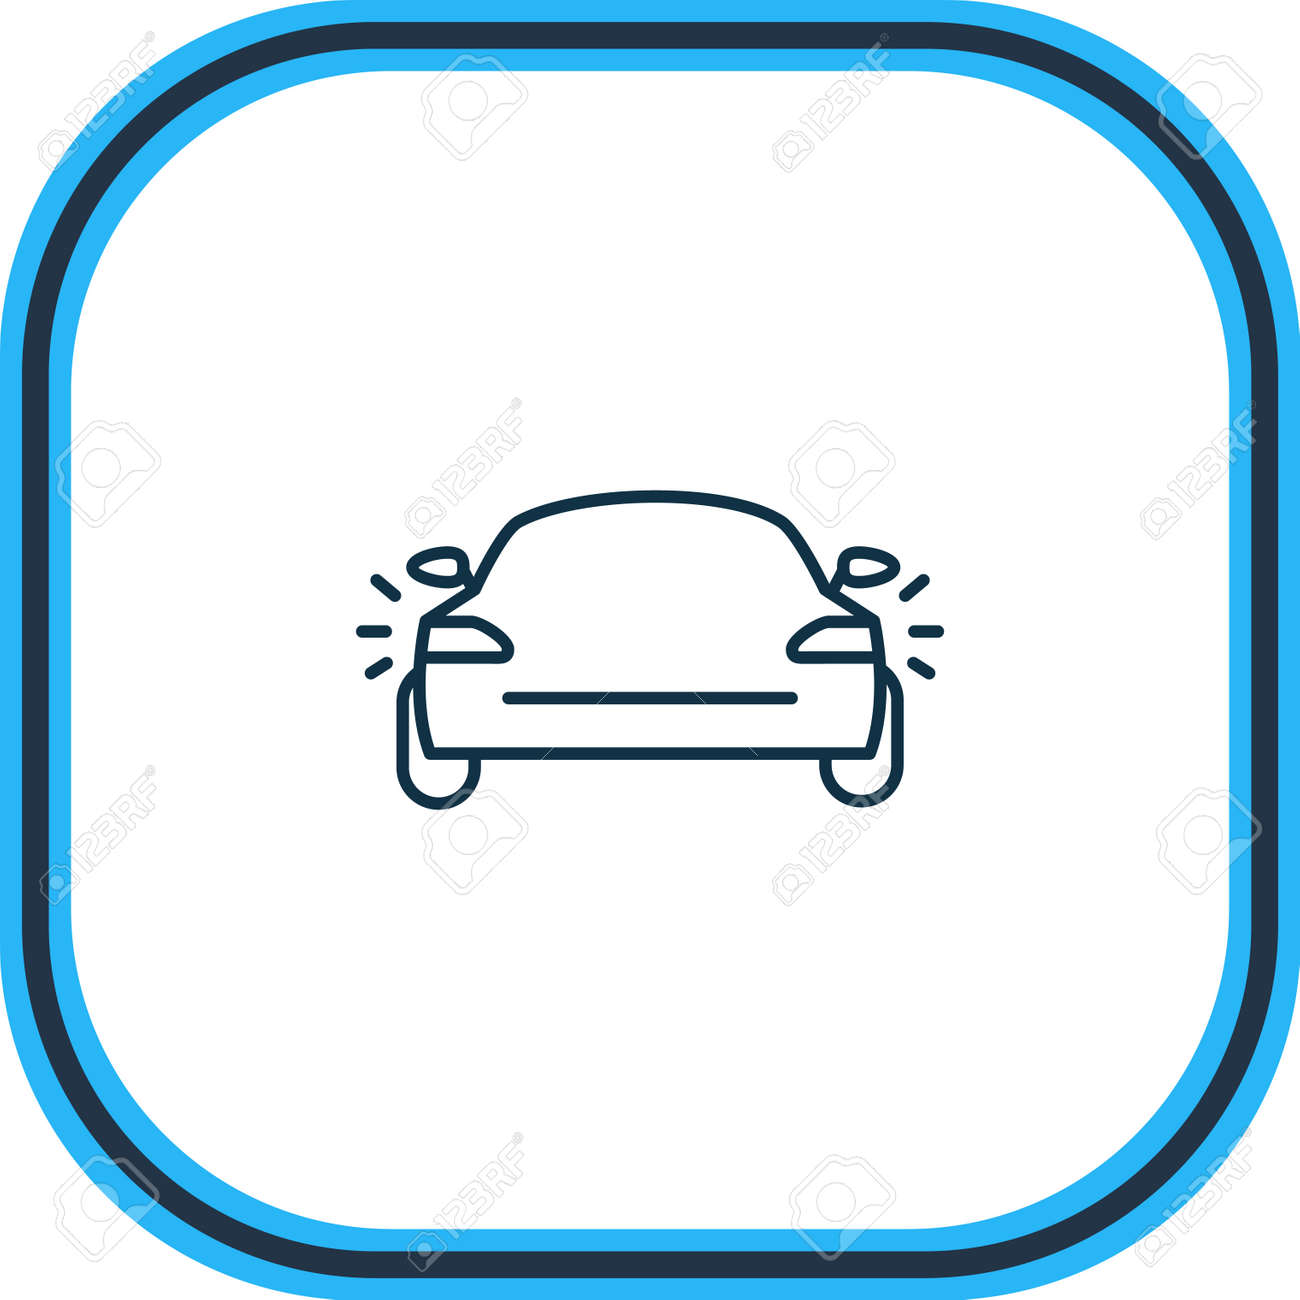 illustration of tail light icon line. Beautiful vehicle element also can be used as headlights icon element. - 157462674